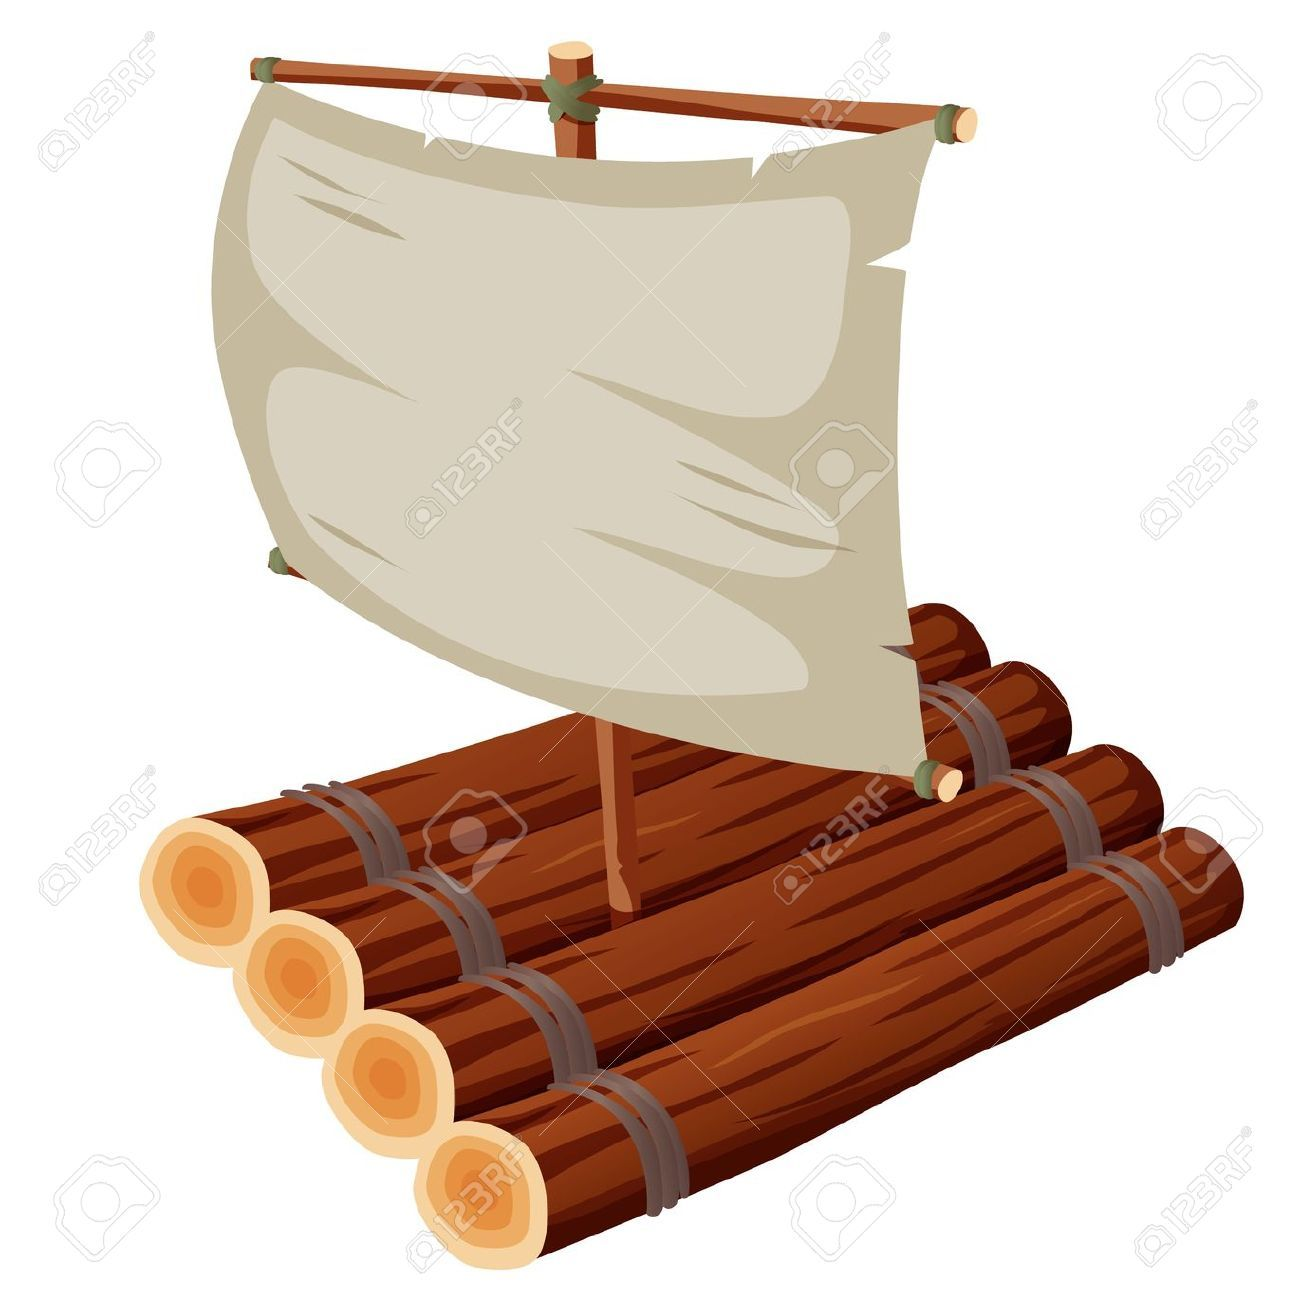 Raft images clipart picture transparent stock Wooden raft clipart » Clipart Portal picture transparent stock